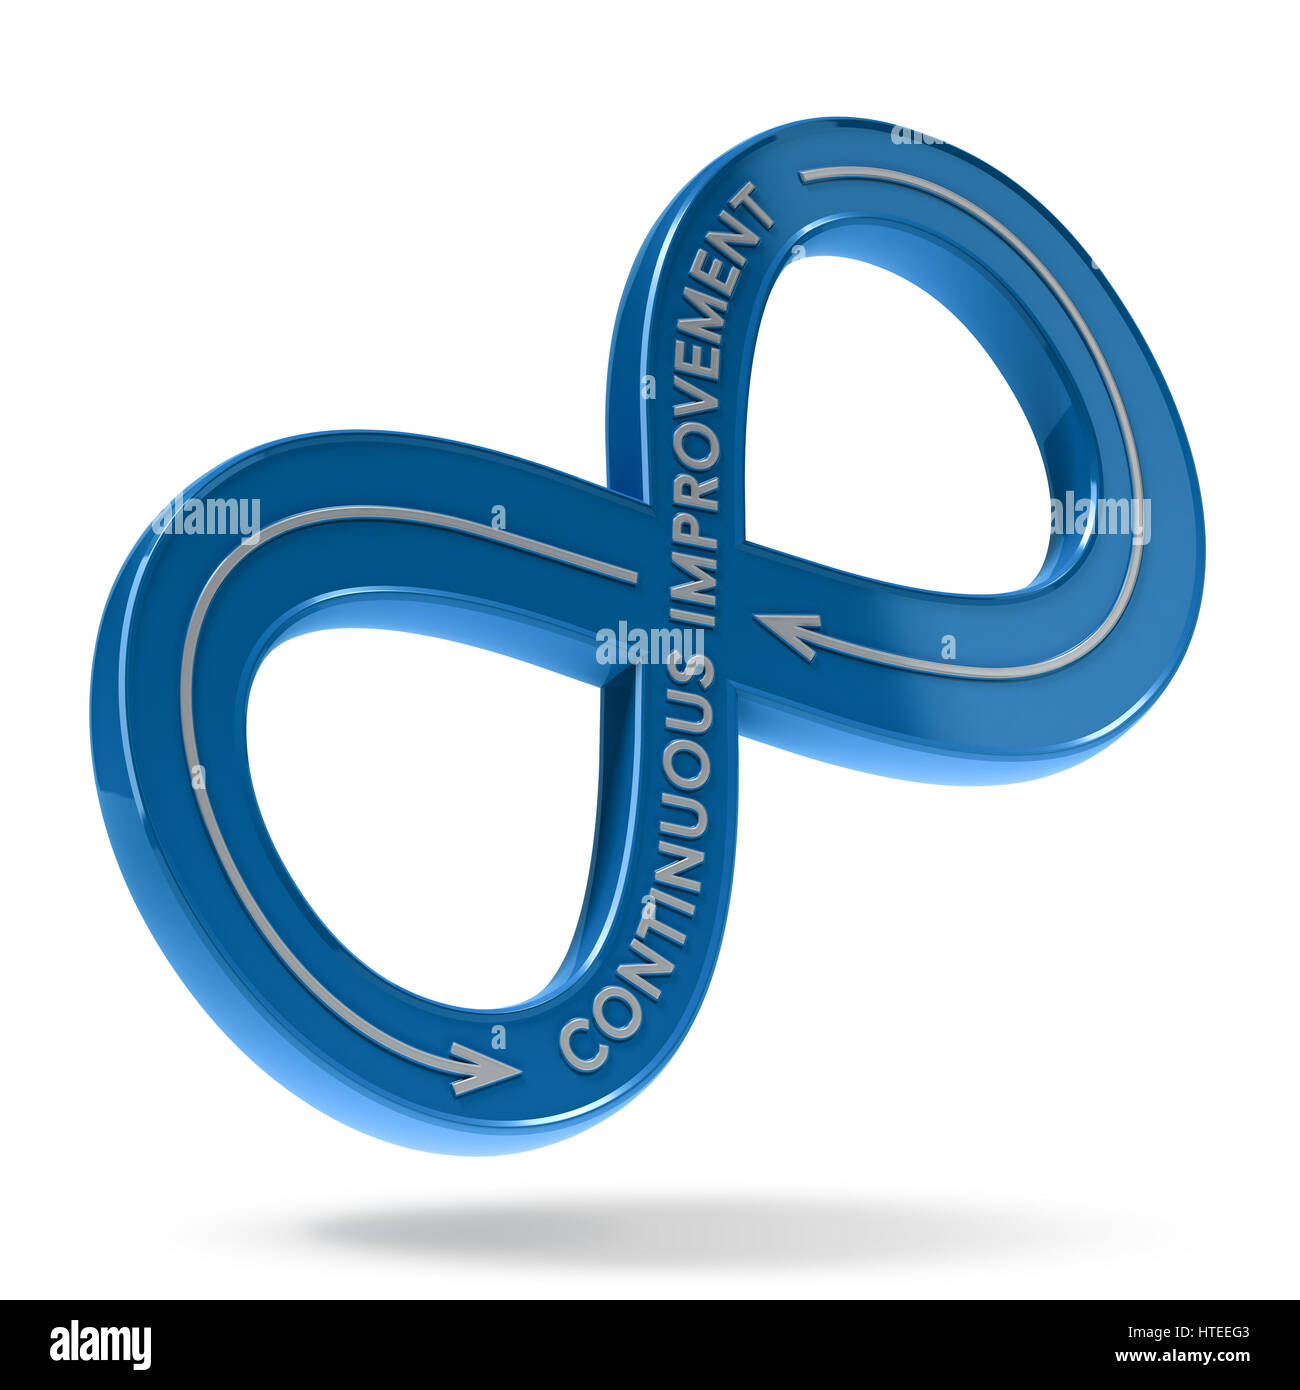 3d Illustration Of An Infinite Symbol With The Text Continuous Stock